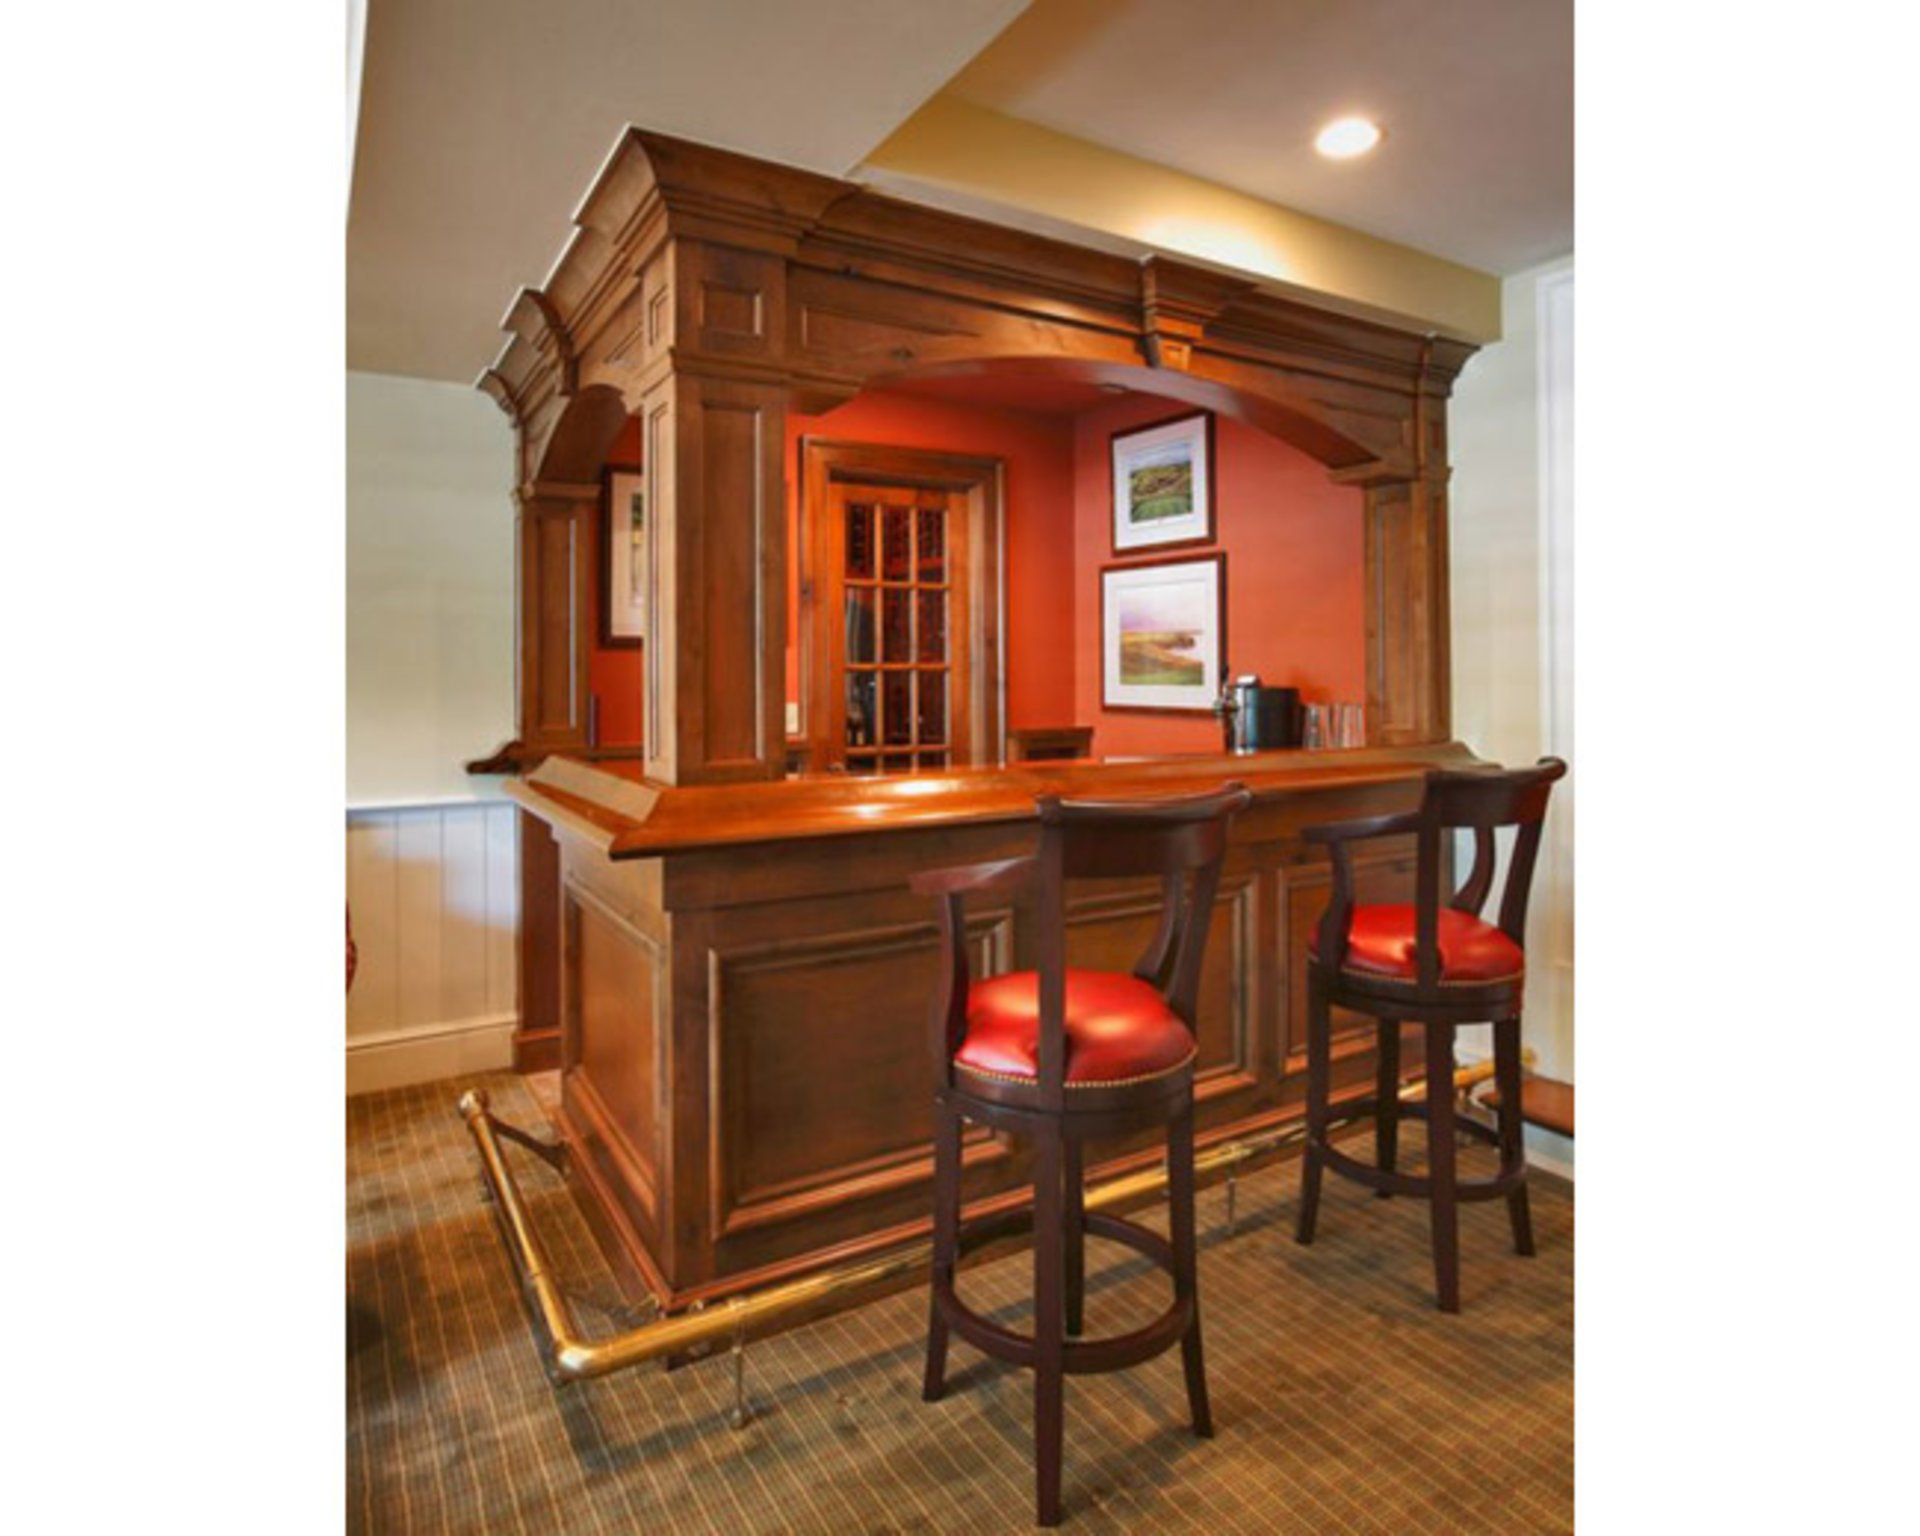 Sturdy Wooden Stools Give The Custom Home Bar A Classic Look.